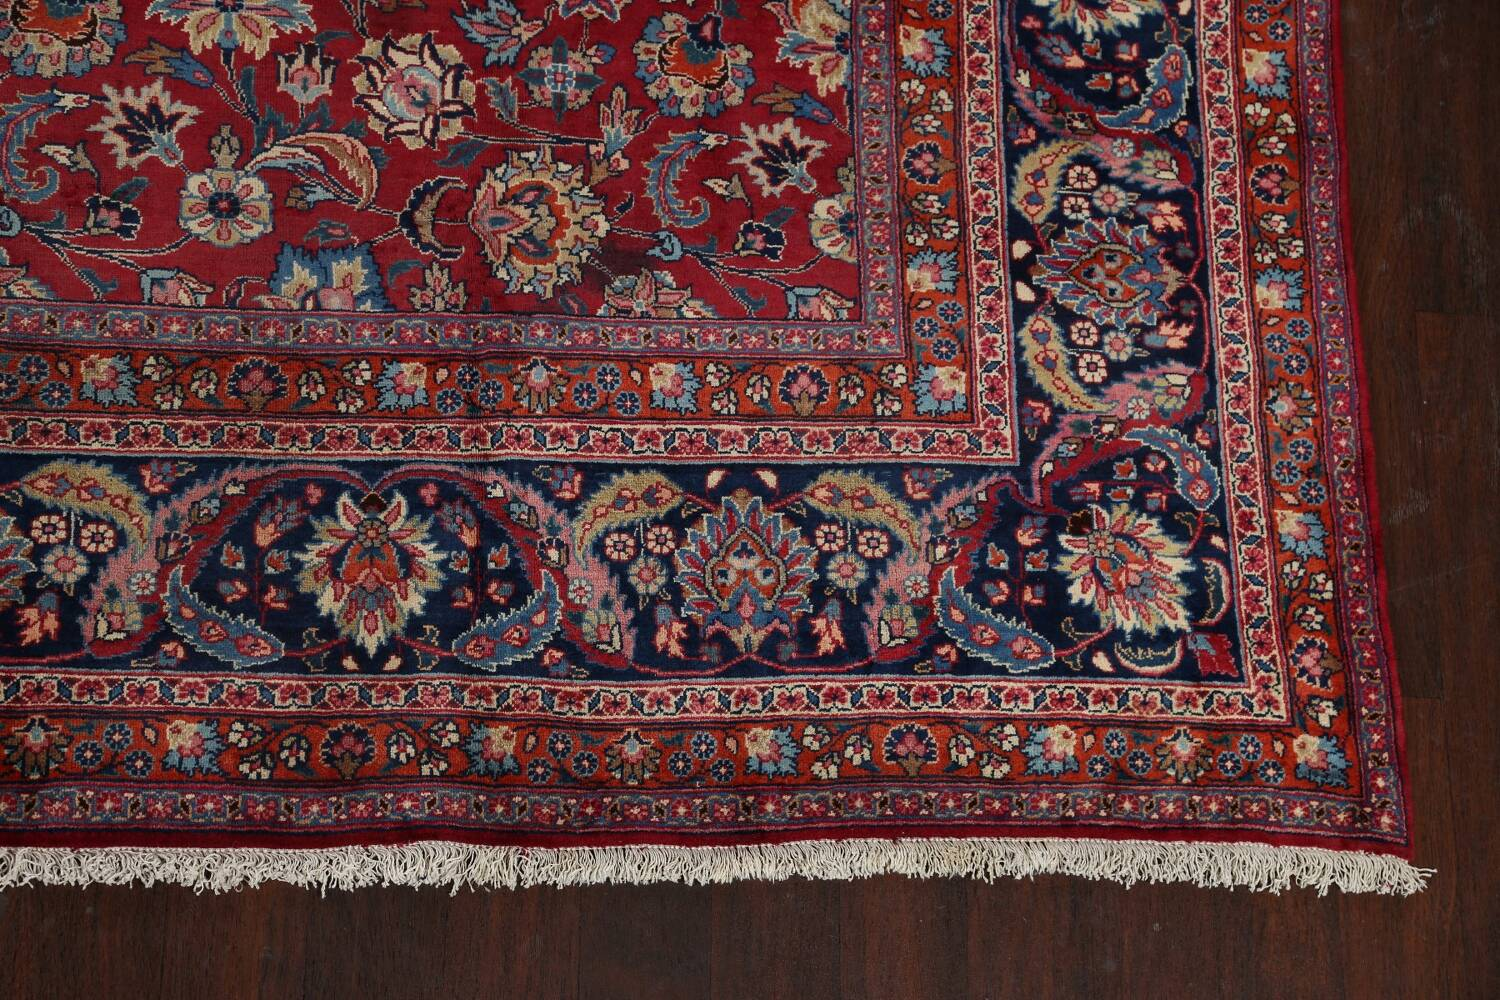 Antique Floral Vegetable Dye Mashad Persian Area Rug 10x13 image 5